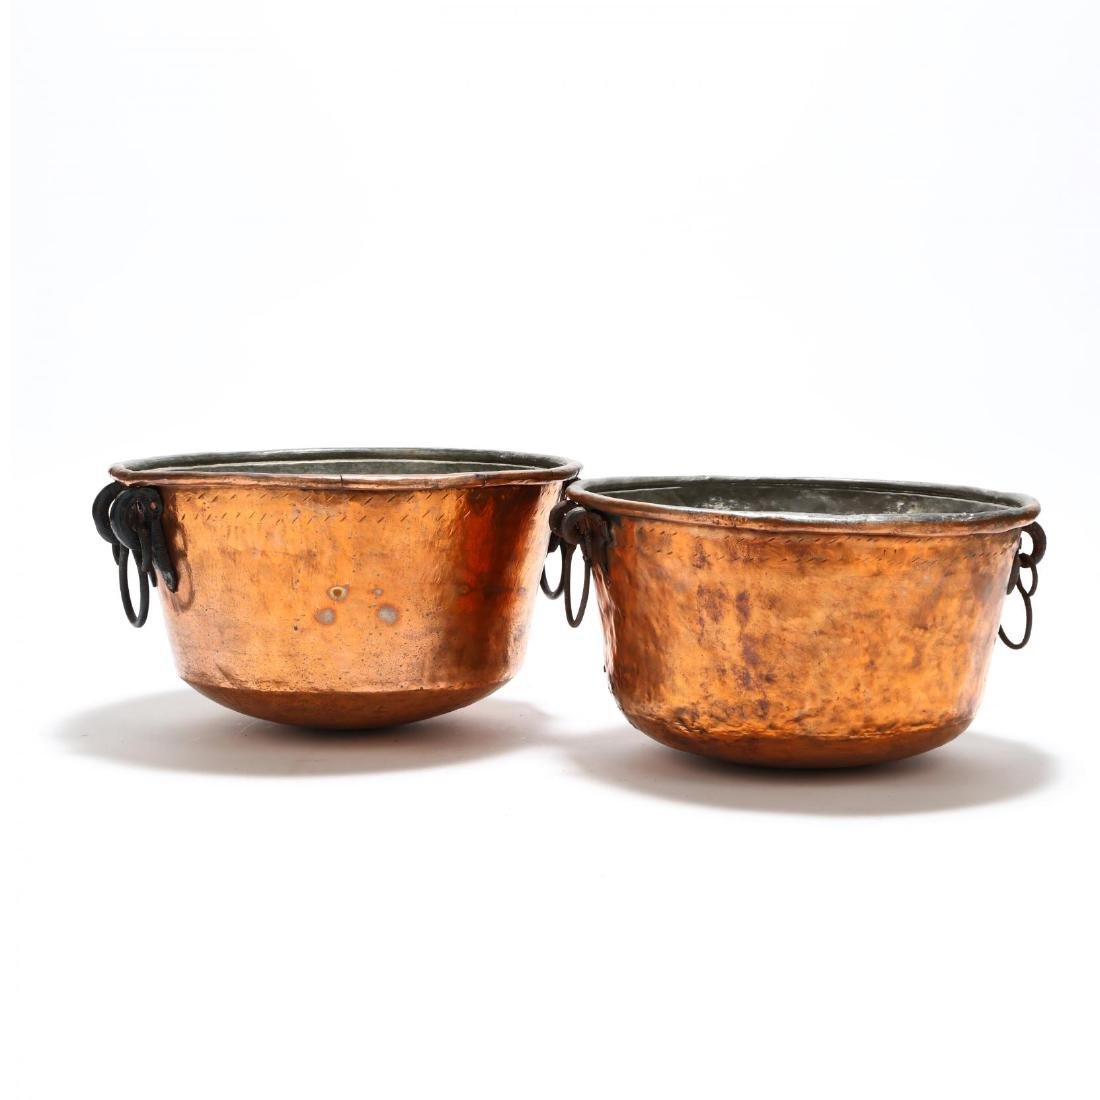 Two Large Hand-Hammered Copper Cauldrons